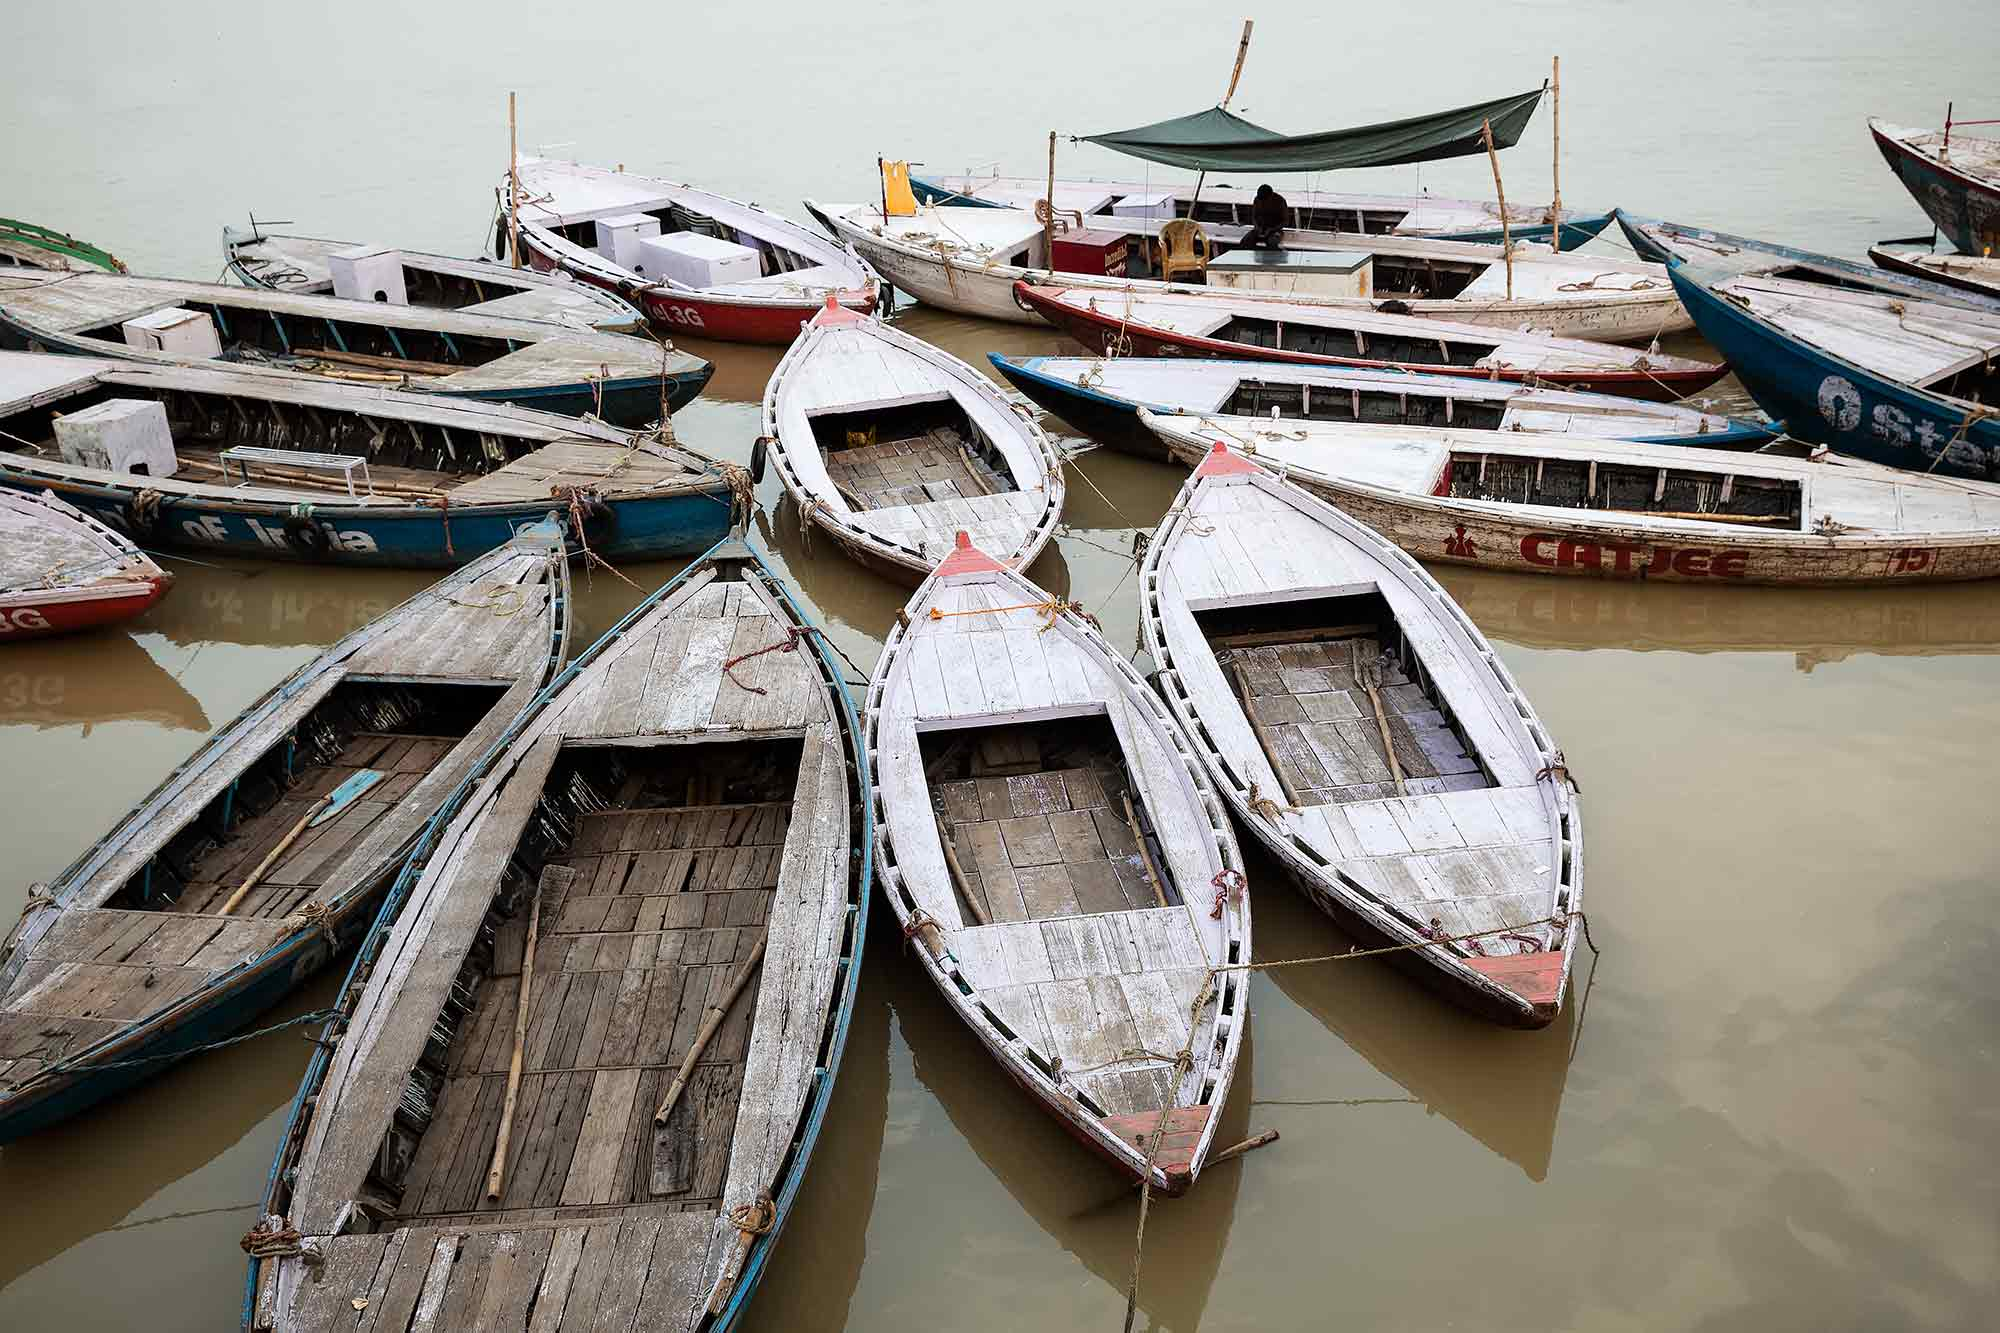 boats-ganges-varanasi-india-1